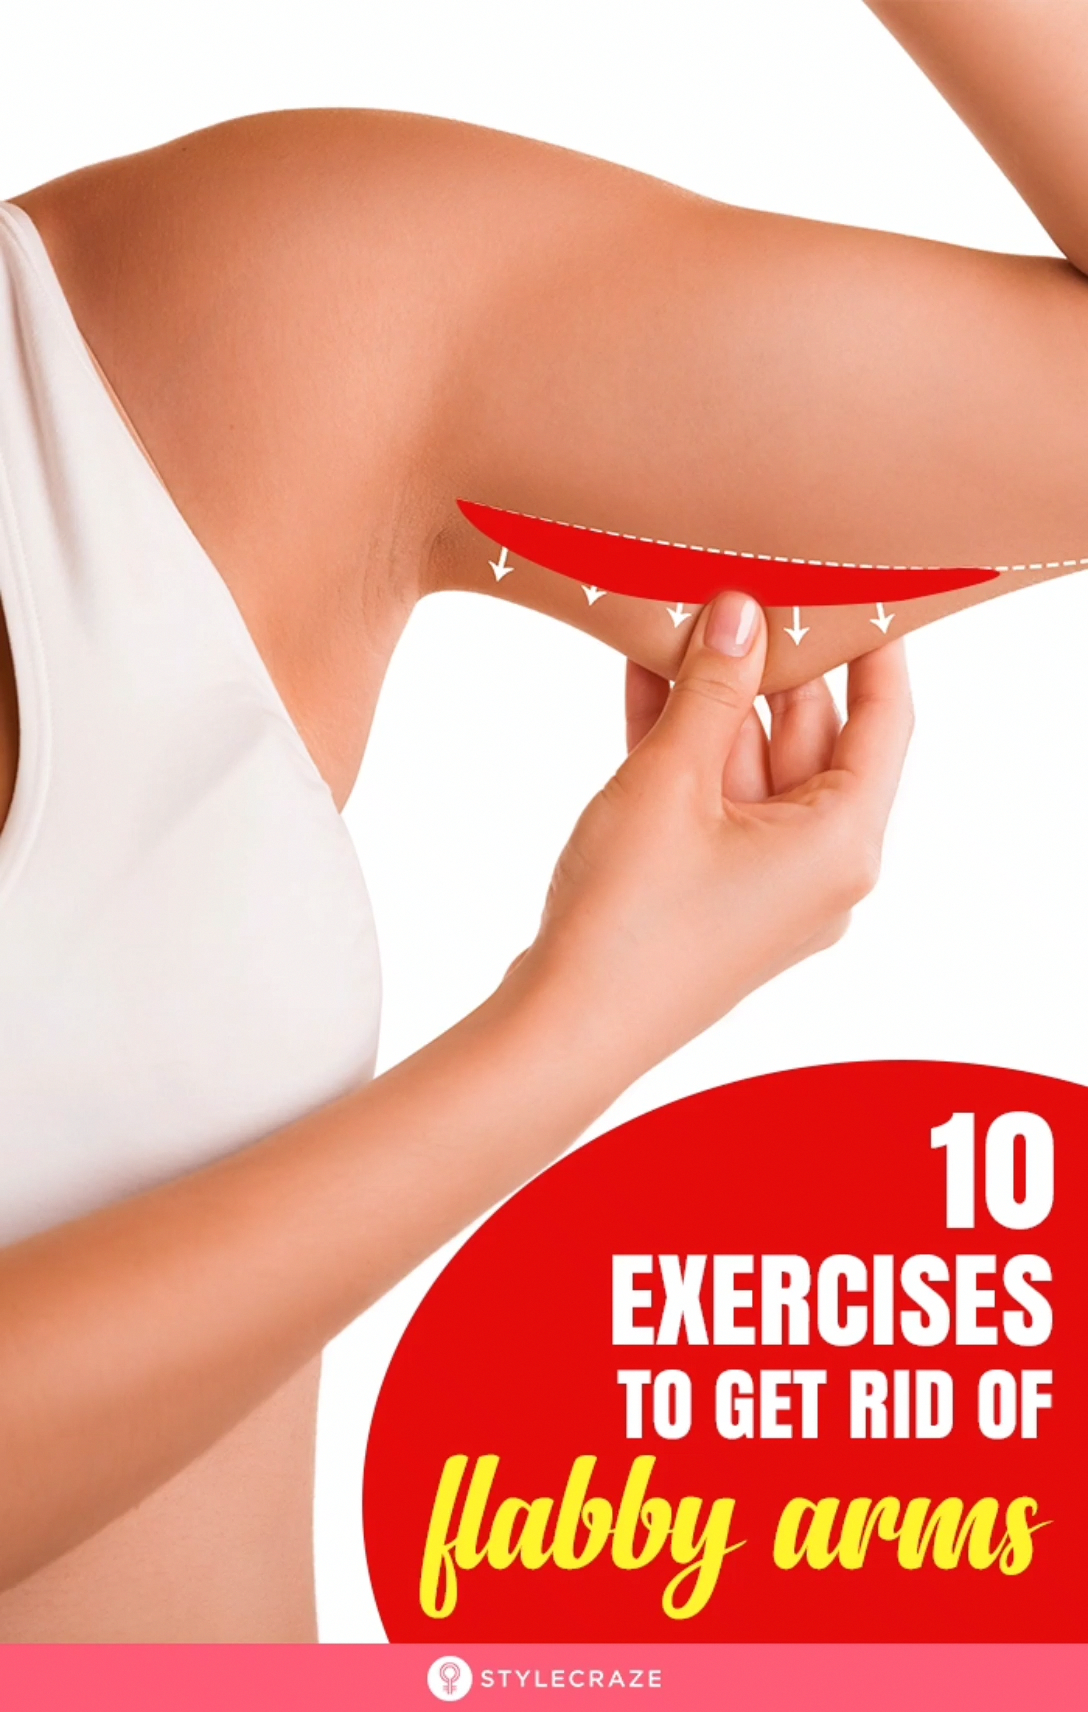 Flabby arms look as bad as a jiggly tummy. They make you look older, unfit, and on top of that sleev...